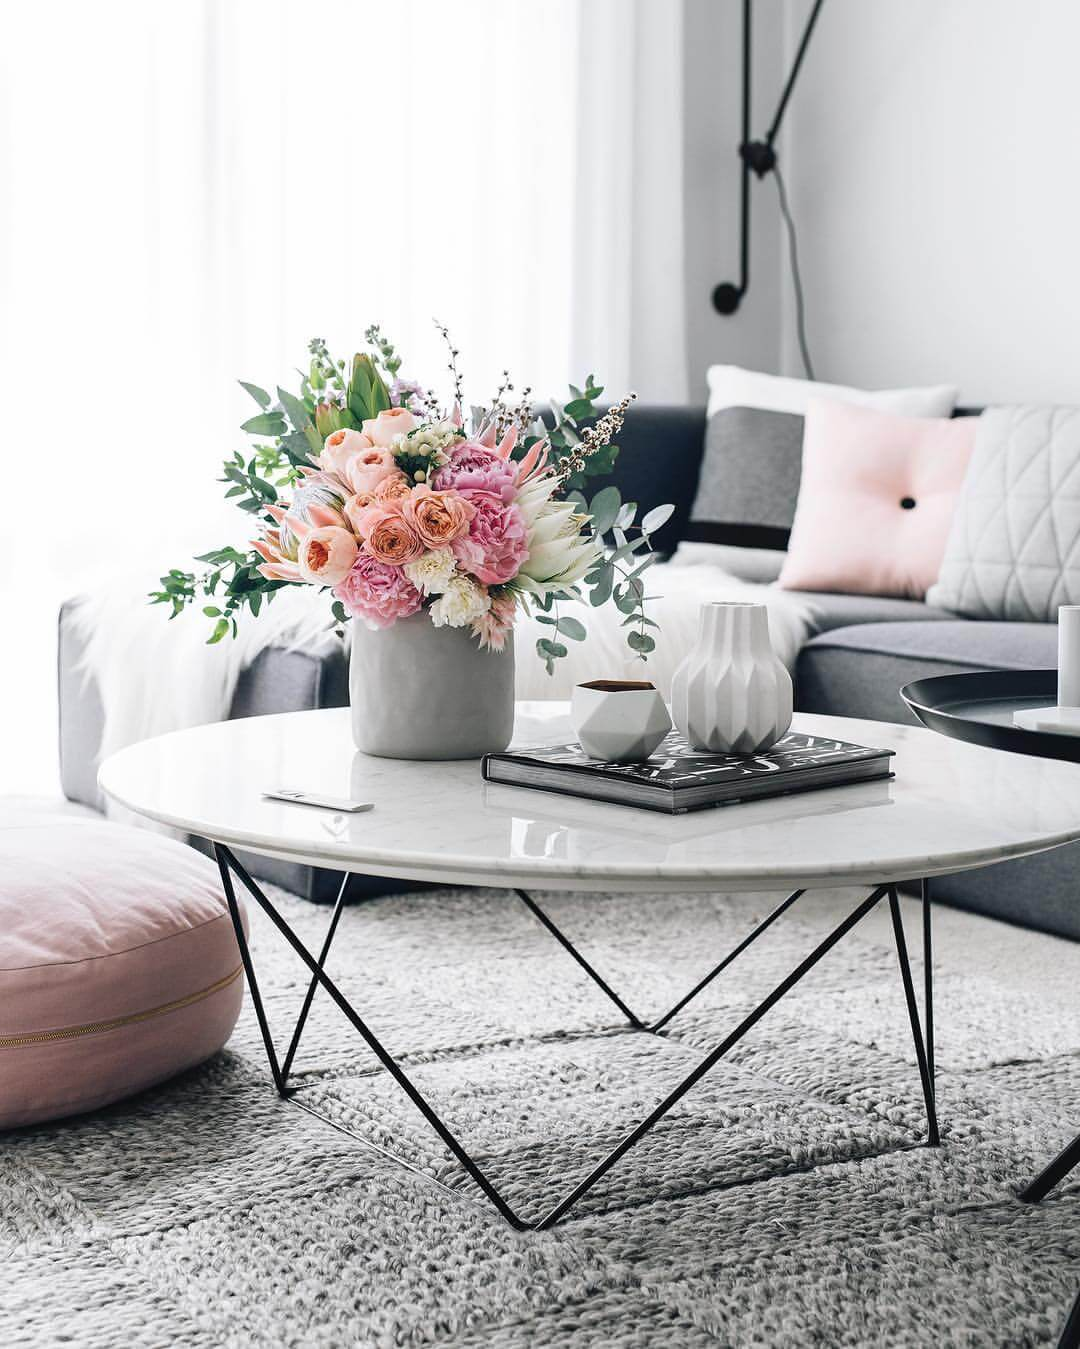 best coffee table decorating ideas and designs for homebnc living room end decor peachy spring flower arrangement with geometric vases under broyhill fontana collection log